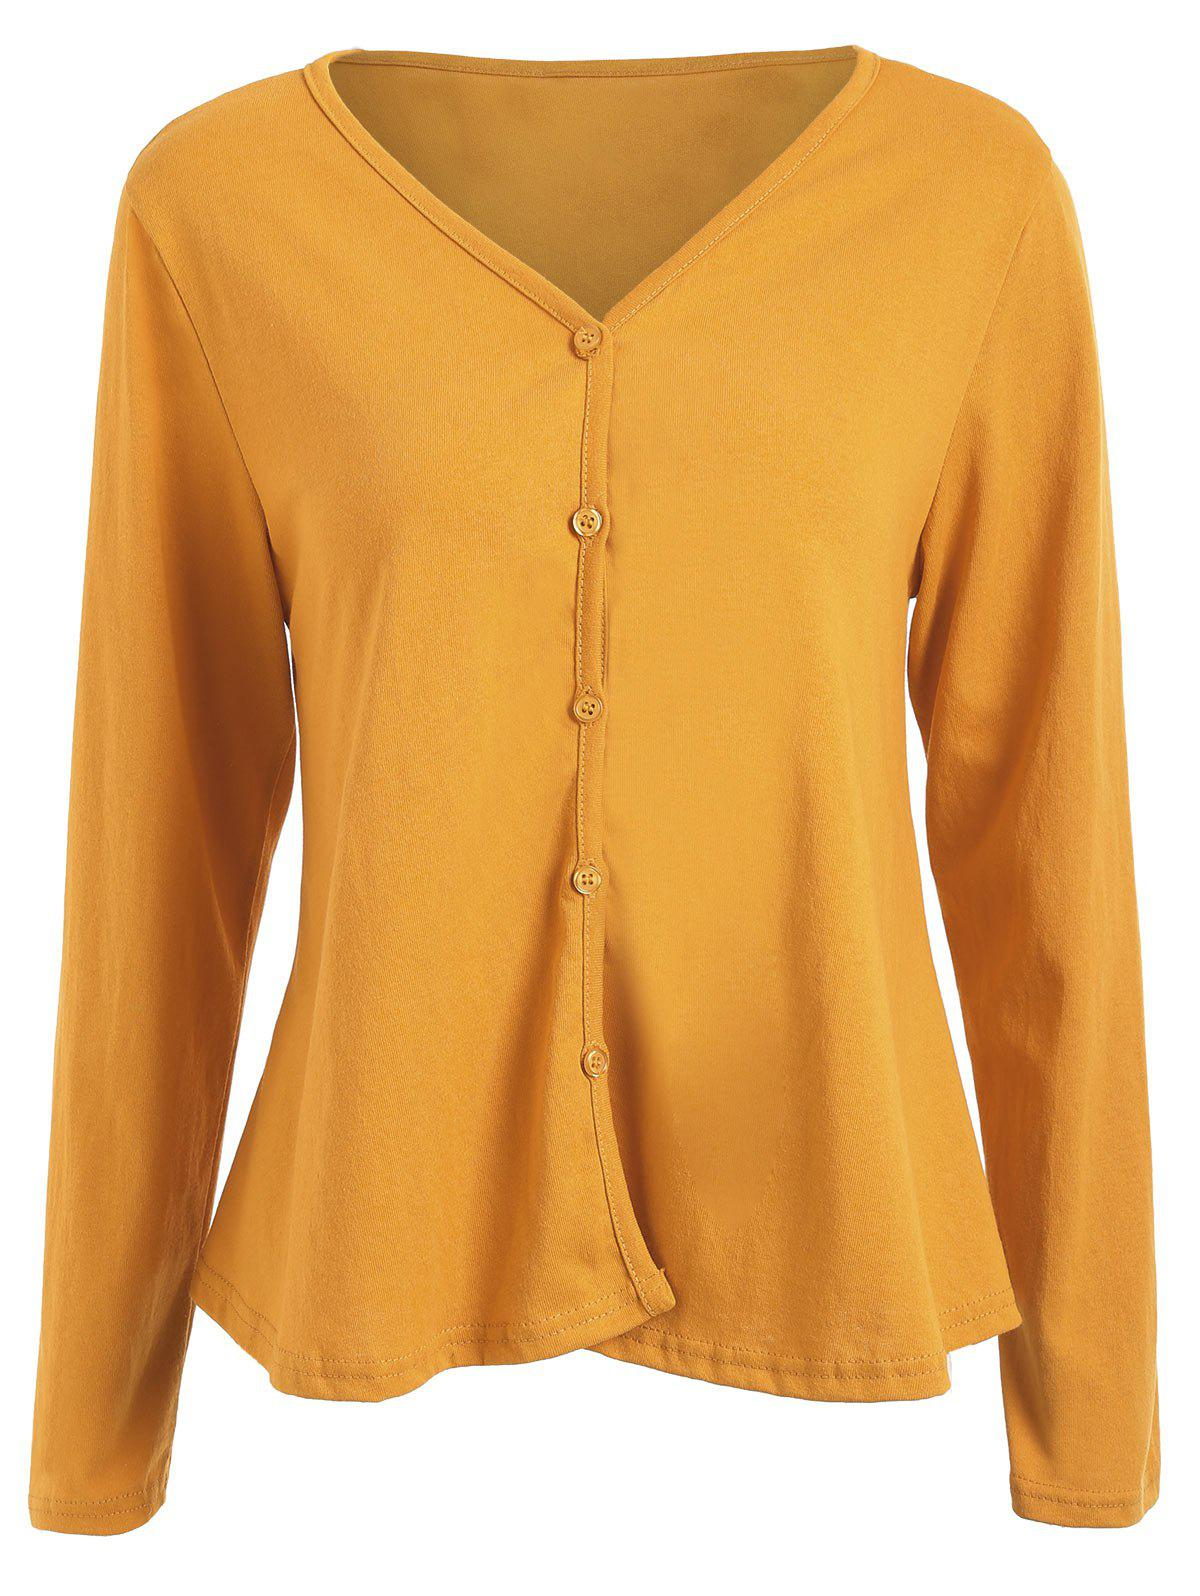 Plus Size Button Up V Neck Cardigan - GINGER 5XL